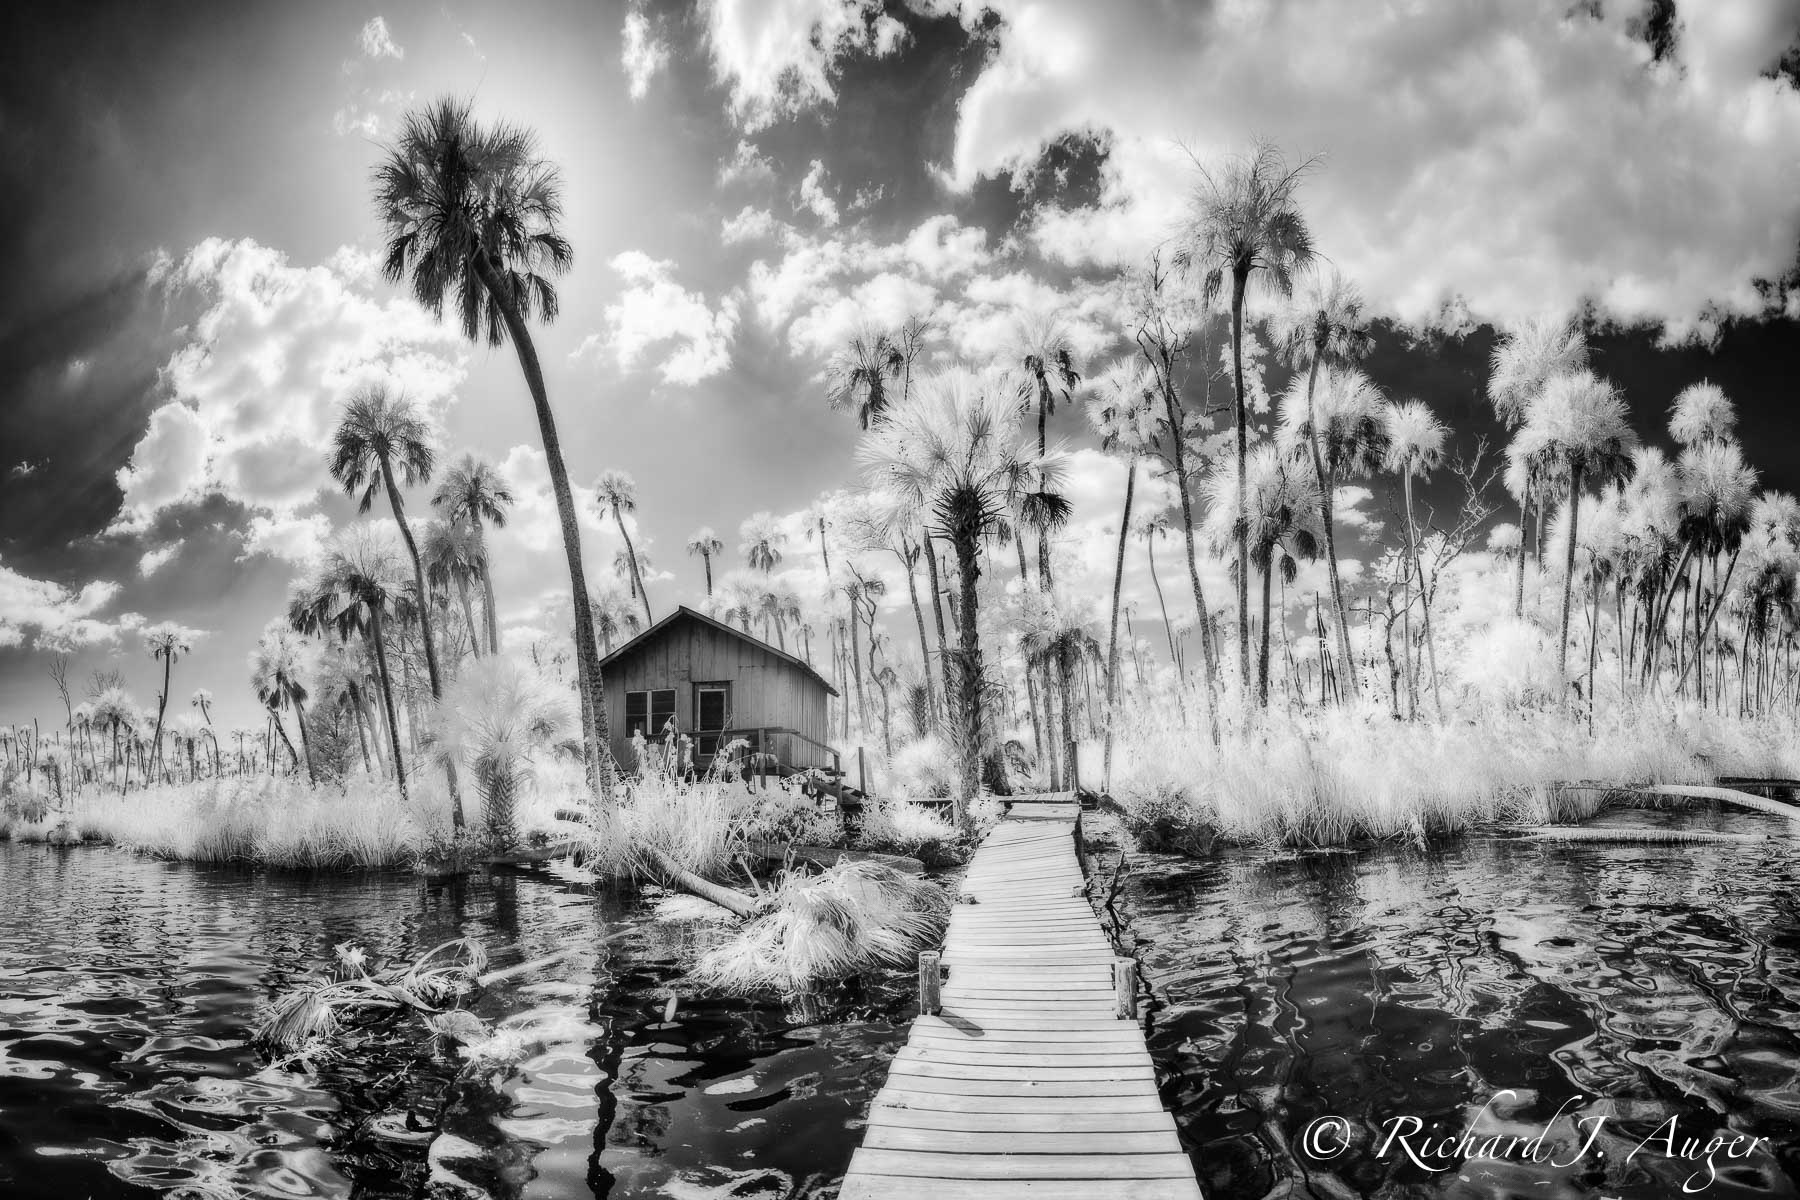 Chassahowitzka River, Chaz, Florida, Swamp, Palm Trees, Fishing Shack, Stormy, Black and White, Monochrome, Photograph, Photo, Nature, Landscape, Richard Auger